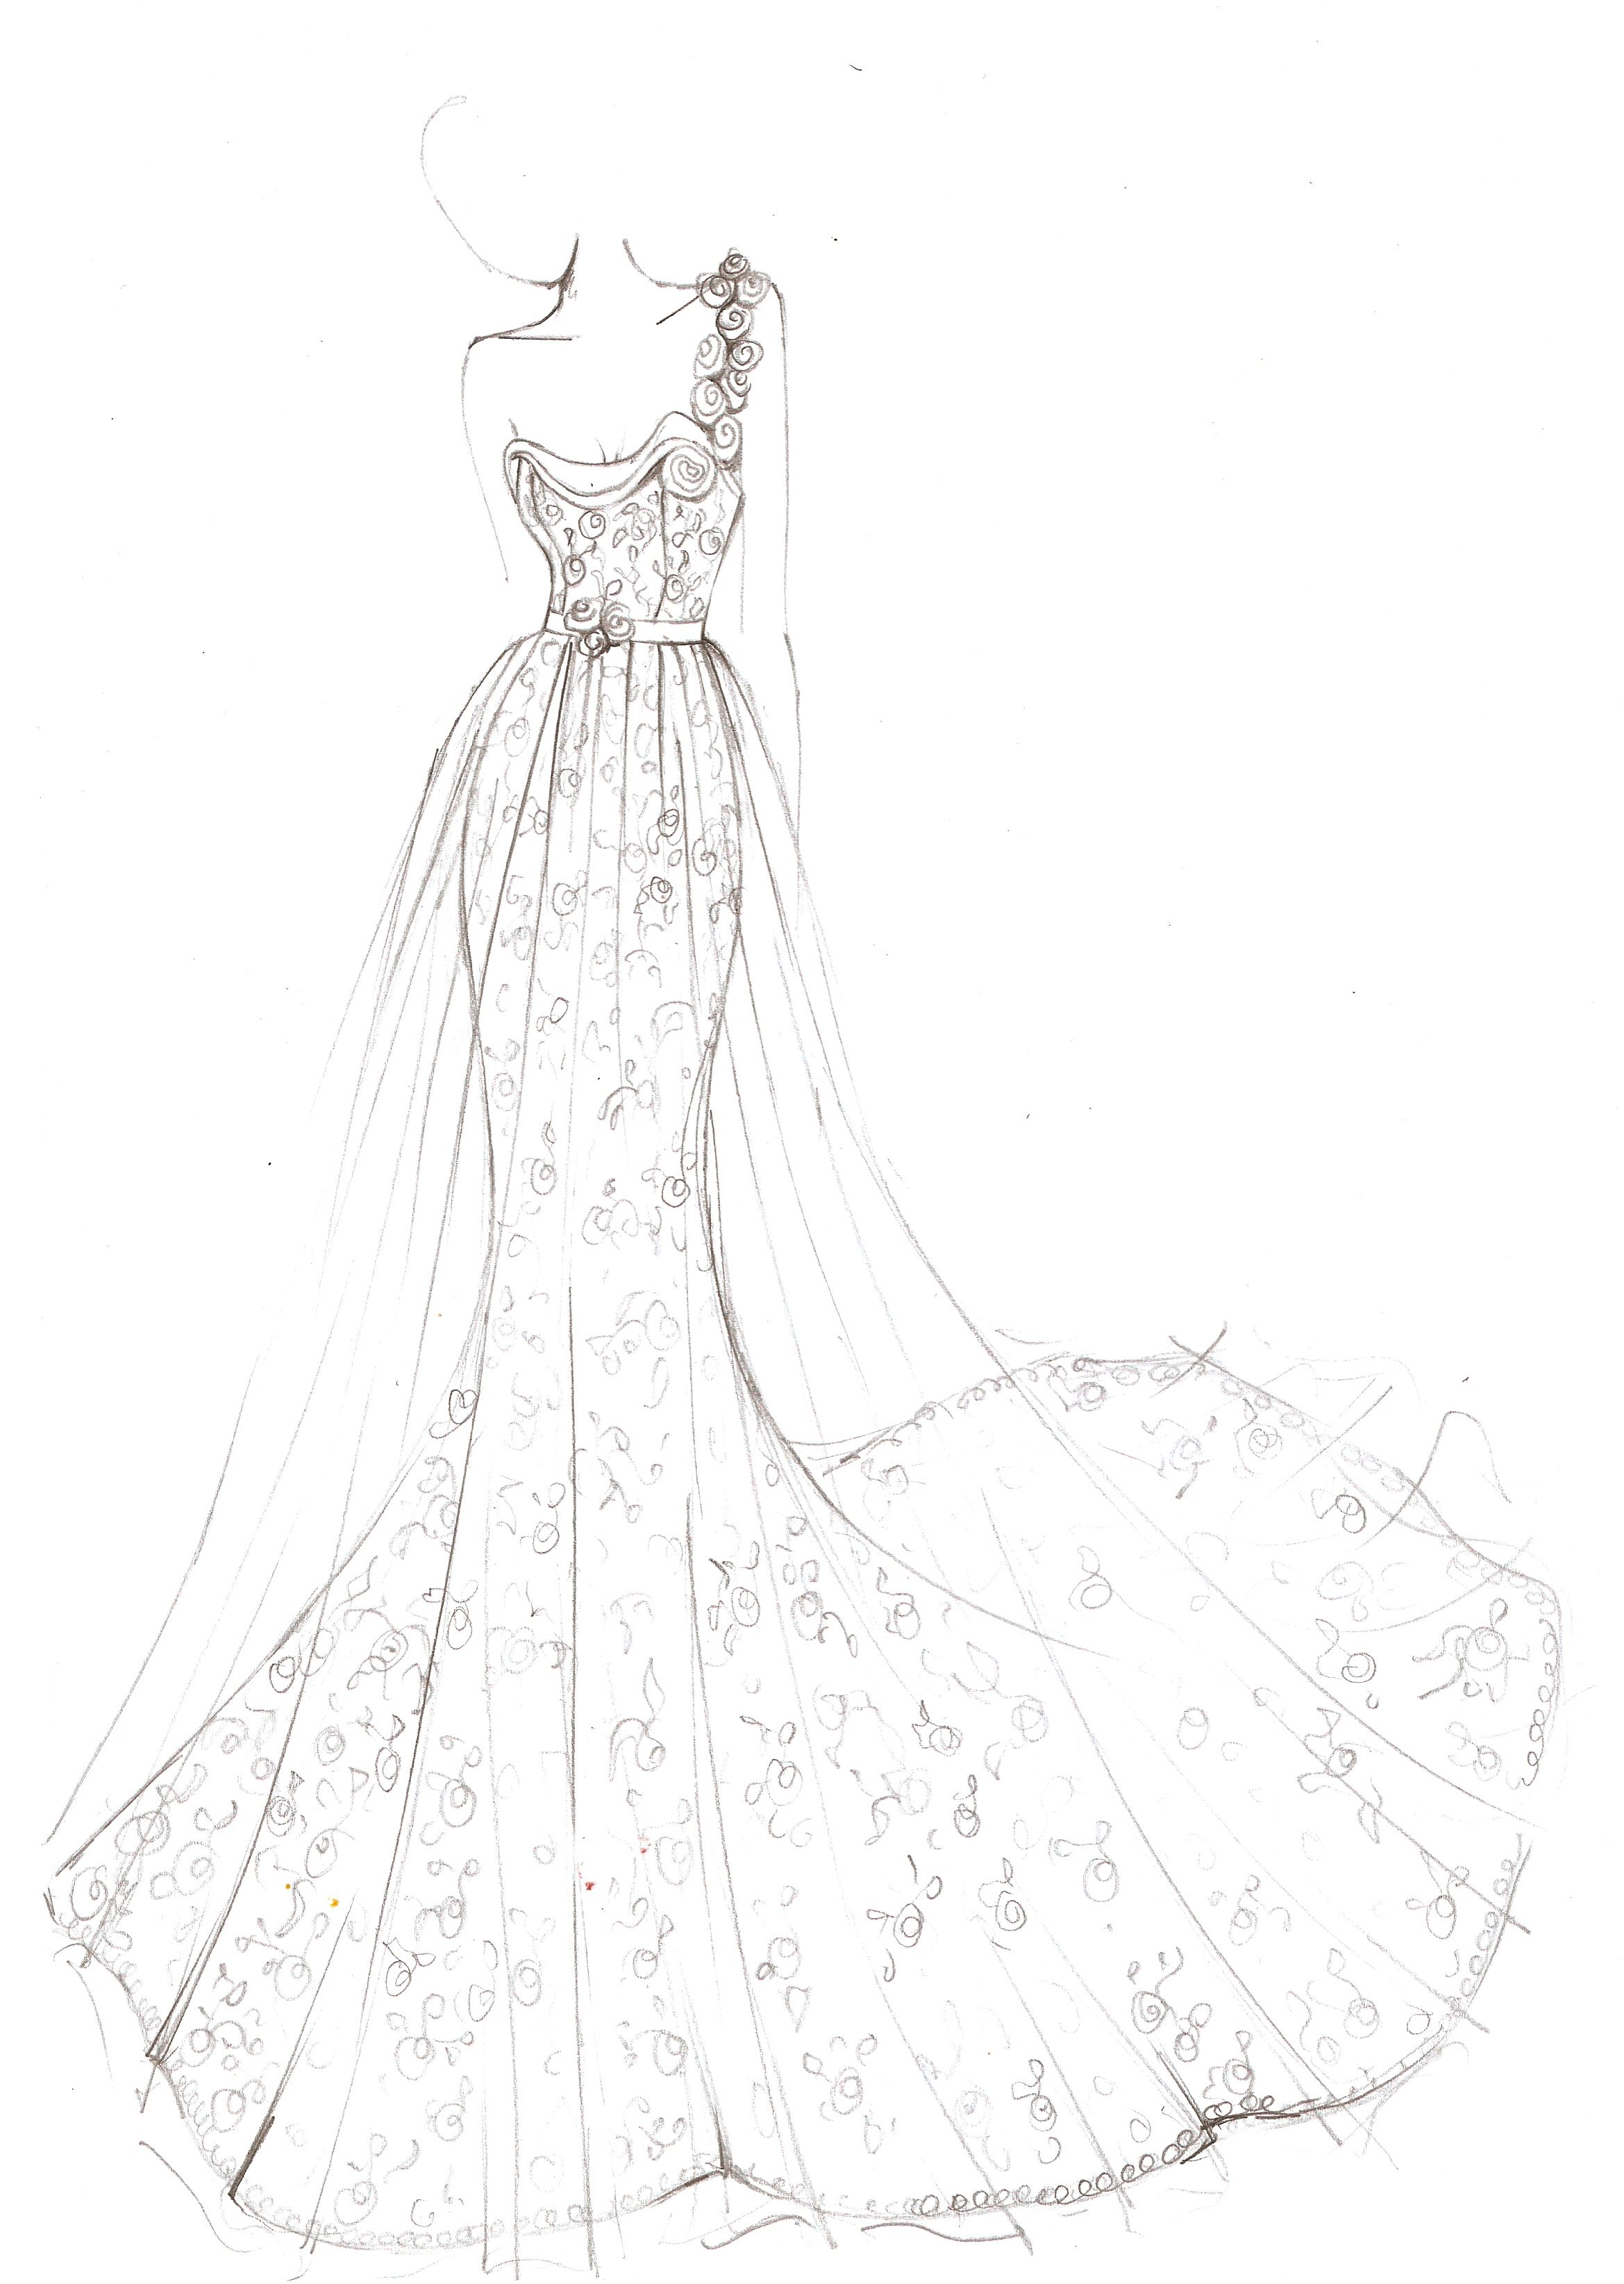 Dione Designed By White Leaf Bridal Design Illustration Bridal Bespoke Whiteleaf Lace Dress We Dress Design Drawing Bridal Designs Fashion Illustration